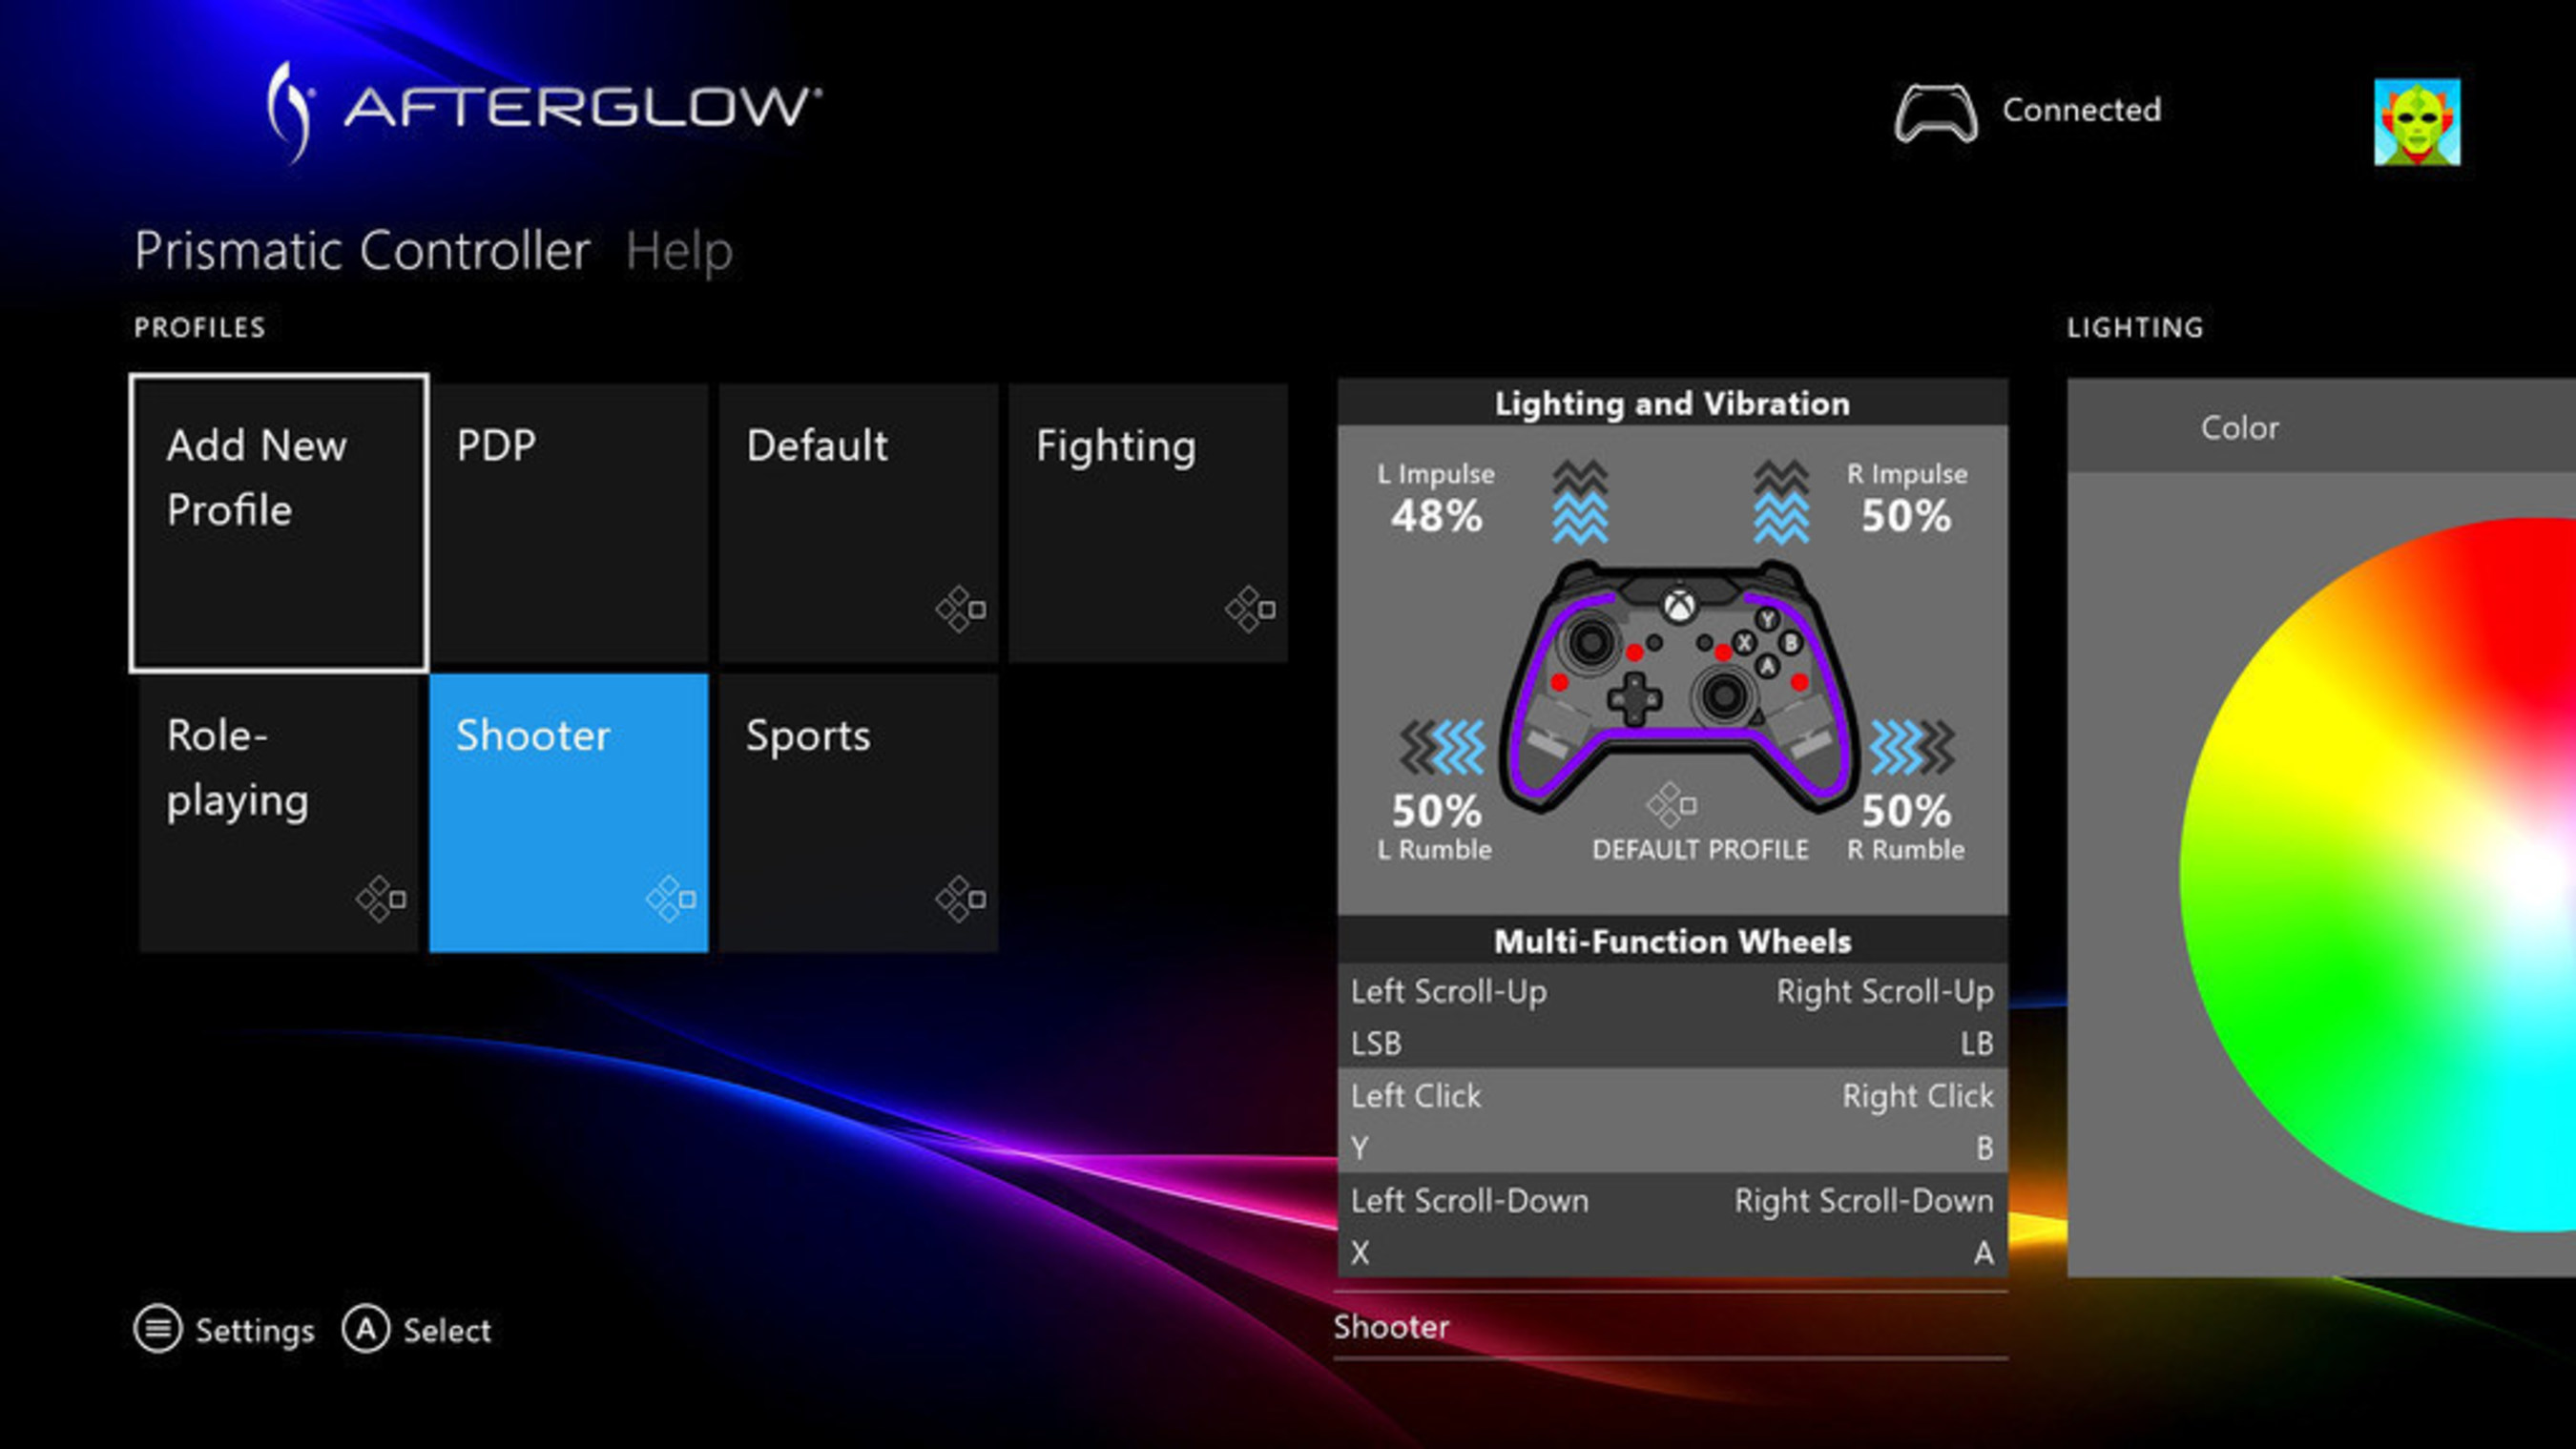 Pdps Free Afterglow Prismatic Controller Configuration App For Xbox 360 Slim Diagram Image About Wiring And Launching May 3 One Gives Gamers